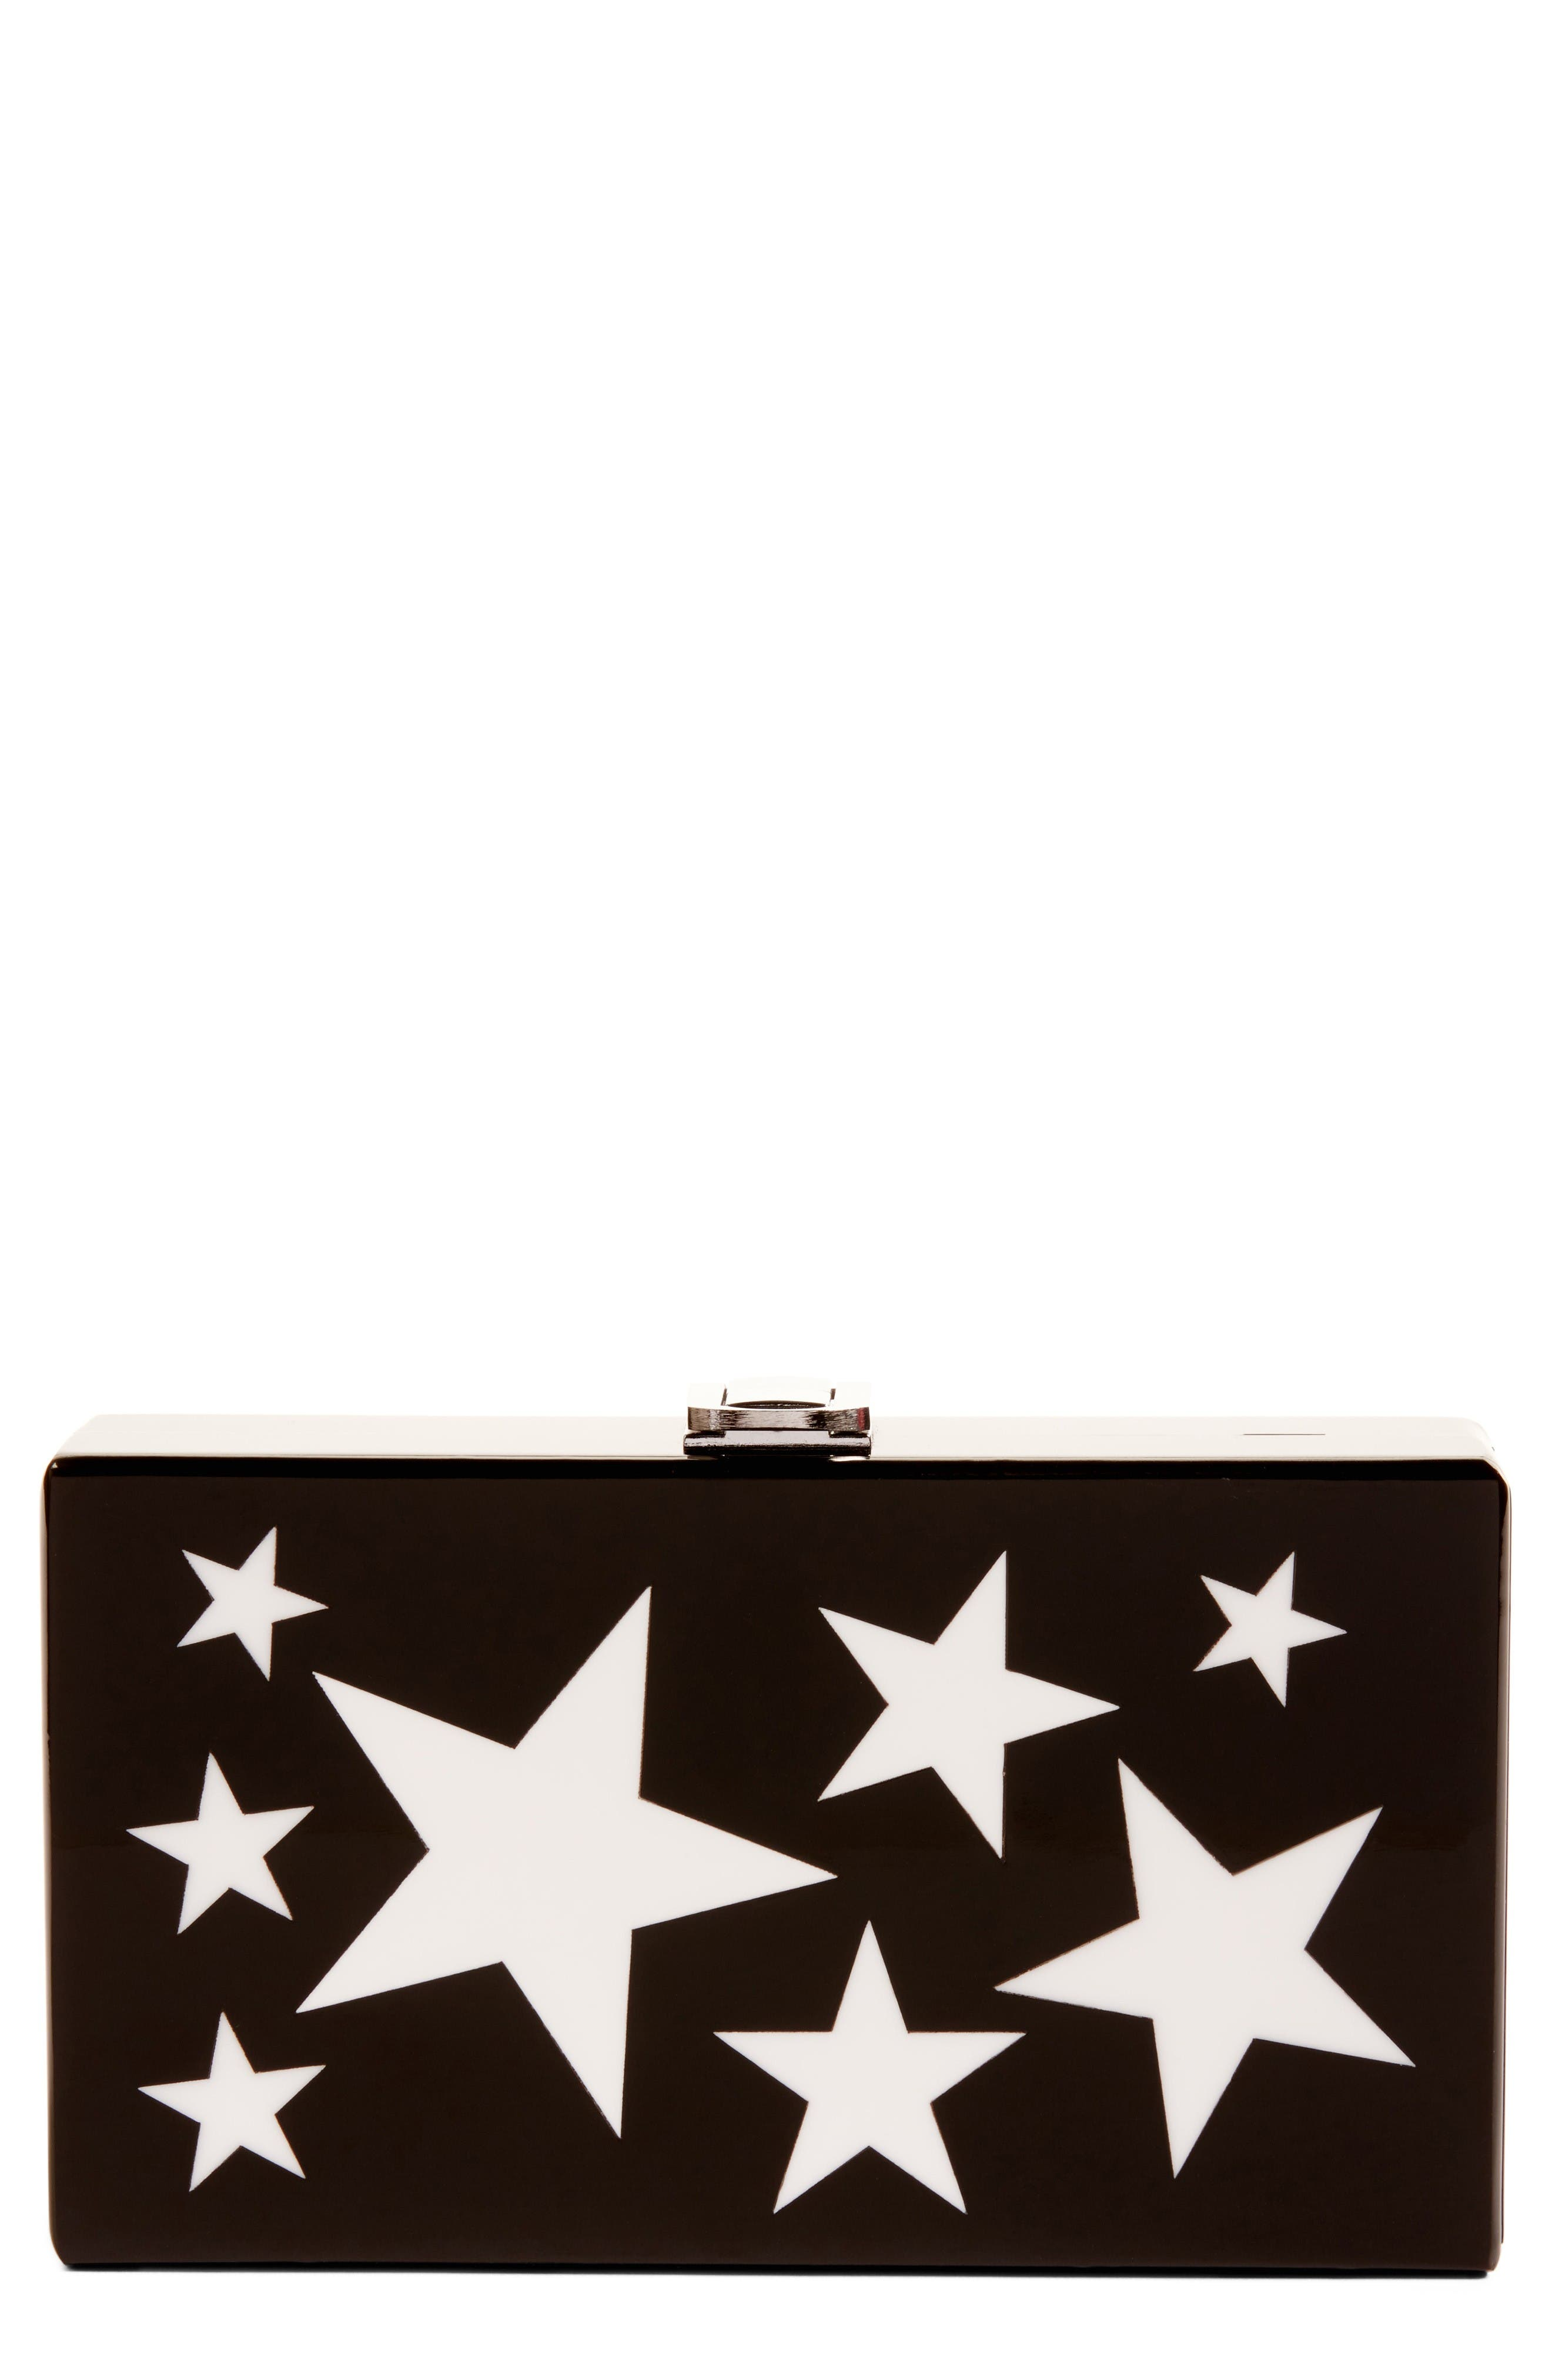 Alternate Image 1 Selected - Nordstrom Etoile Acrylic Box Clutch